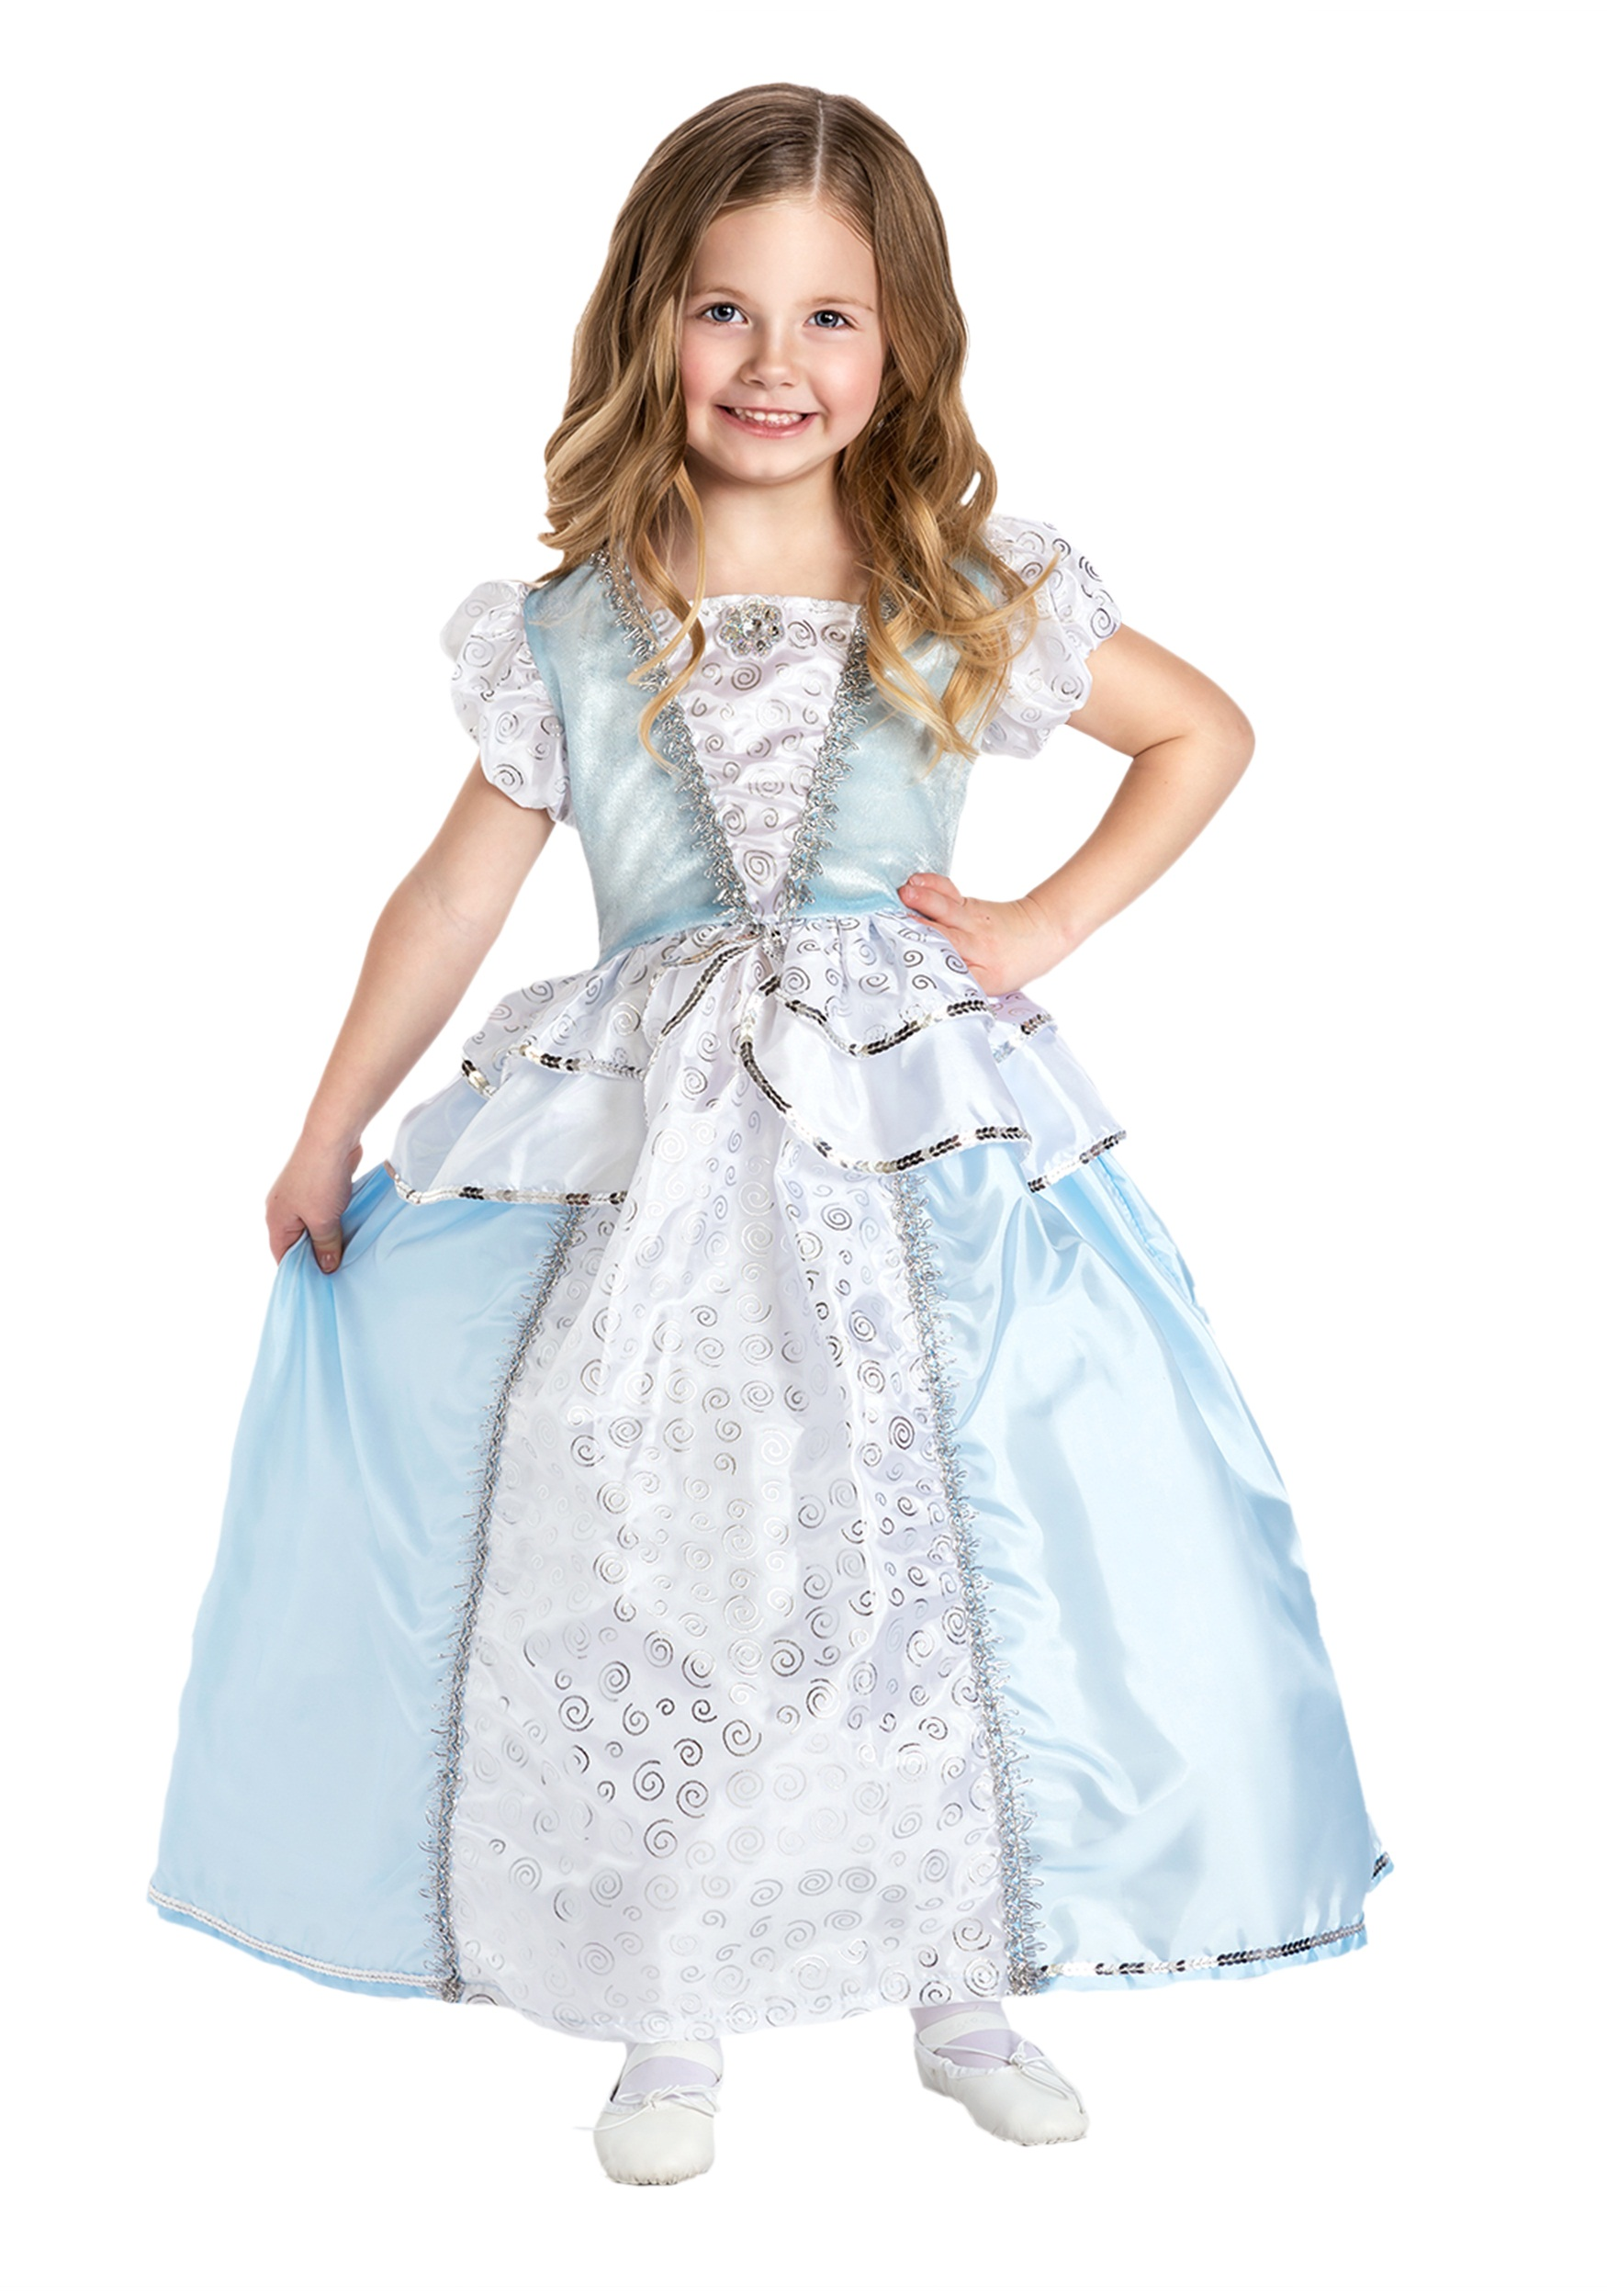 Girls Enchanting Princess Costume  sc 1 st  Halloween Costumes & Girls Enchanting Princess Costume - Halloween Costumes